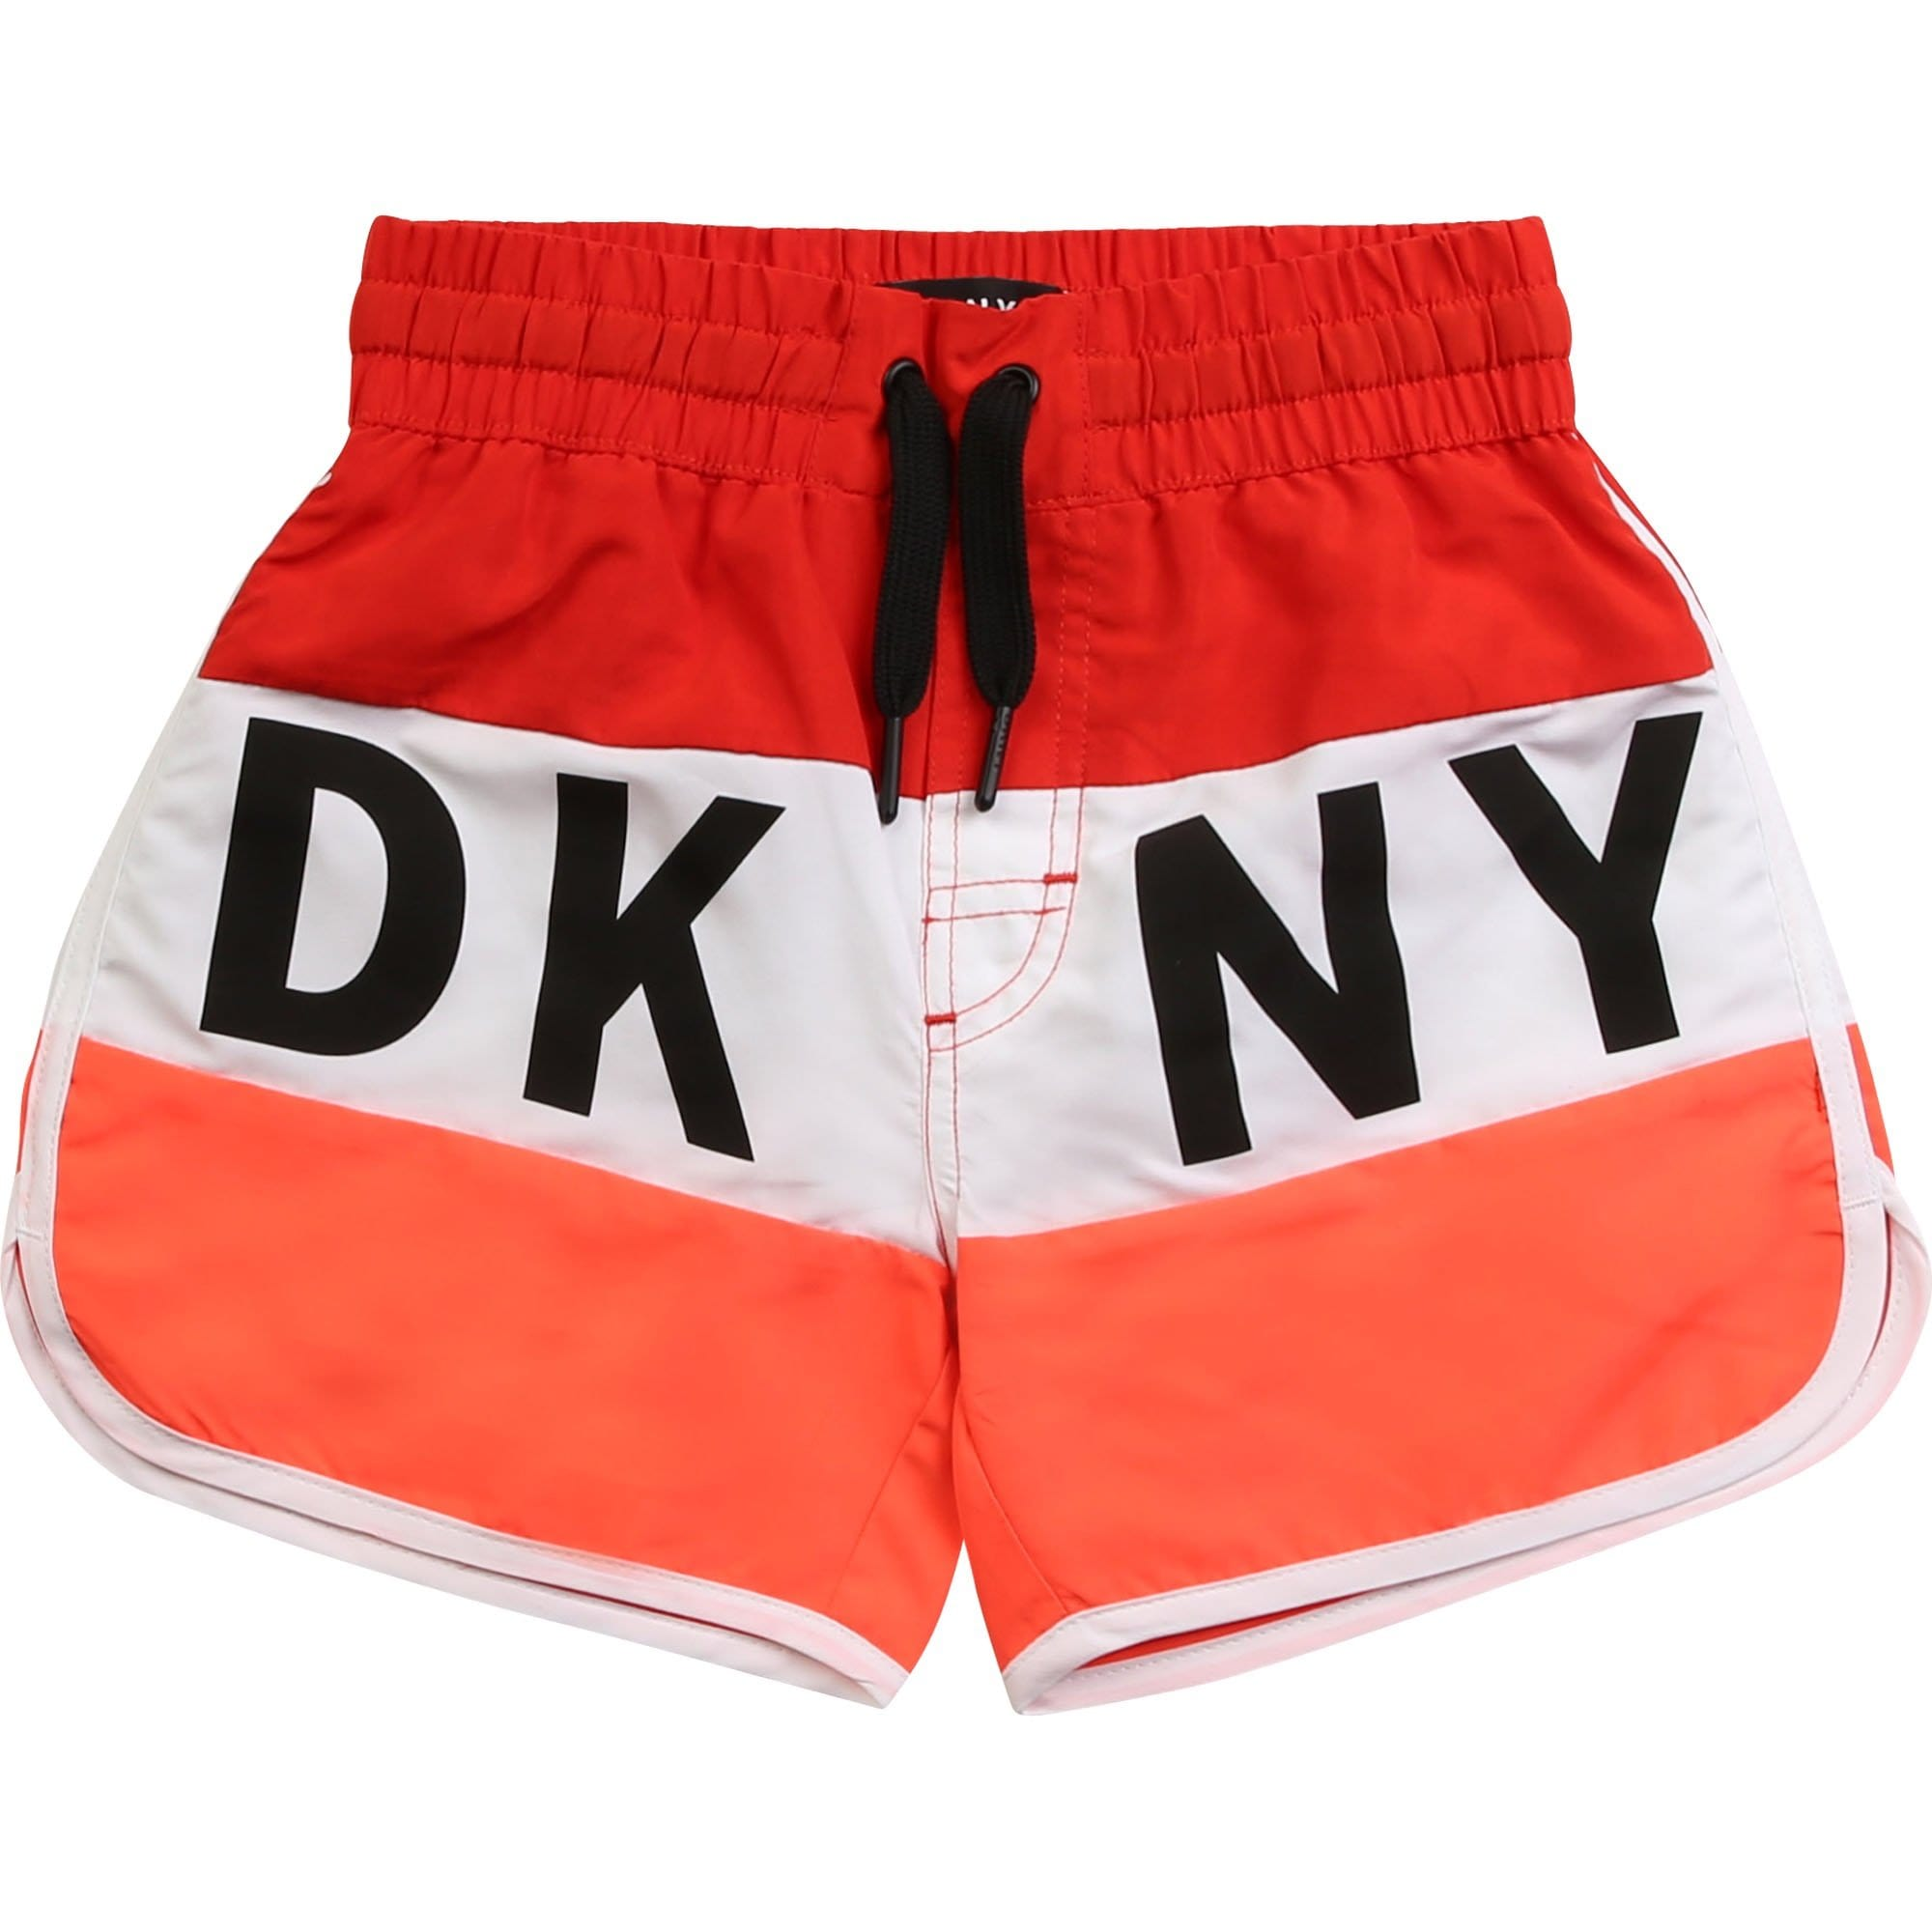 DKNY Logo Board Shorts D24717/977